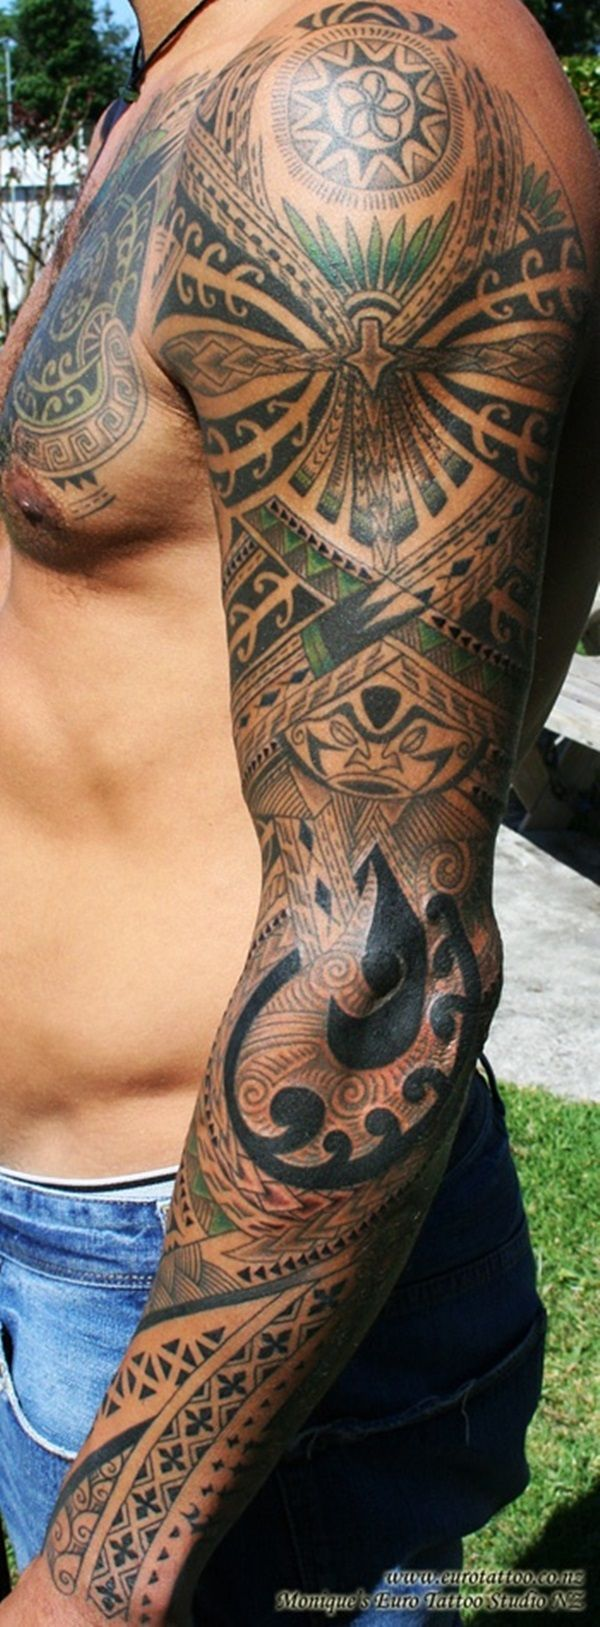 best tattoos images on pinterest tattoo ideas awesome tattoos